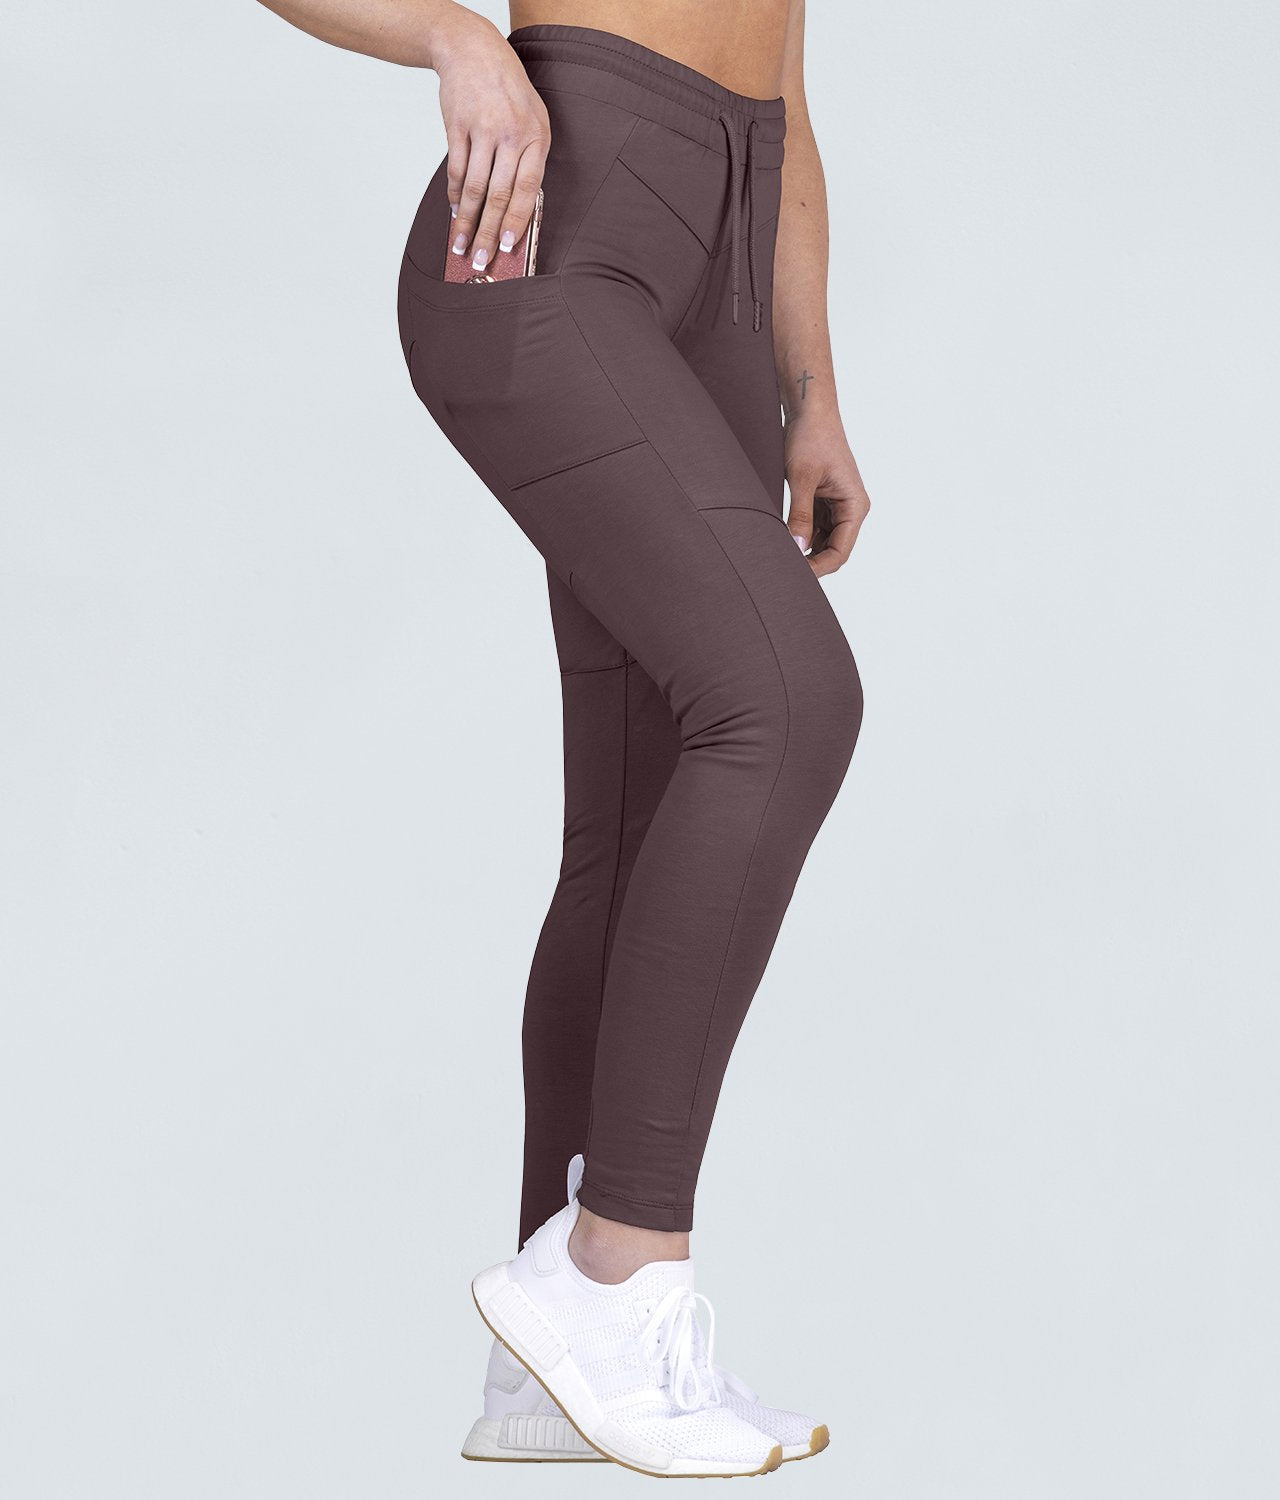 Born Tough Contoured Contoured Fit Ash Brown Gym Workout Tracksuit Jogger Leggings for Women